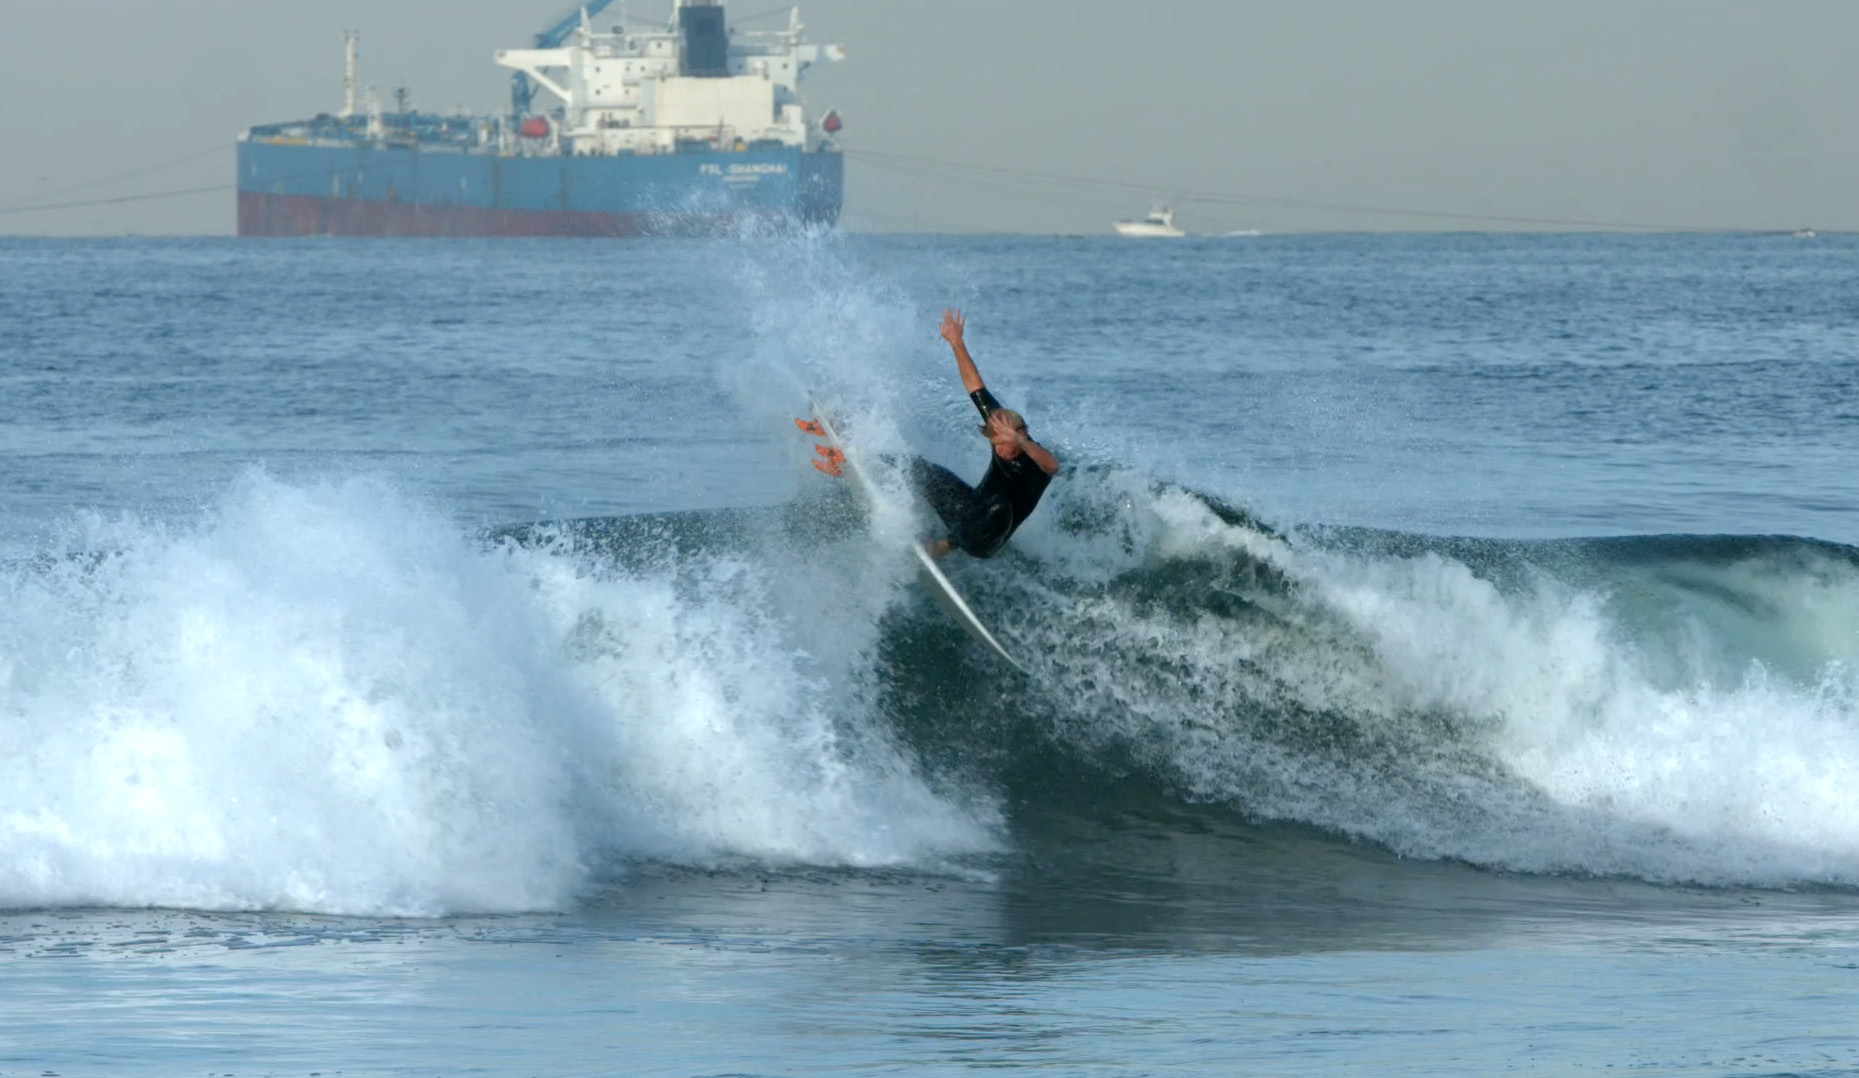 High Octane Surf Action From El Porto